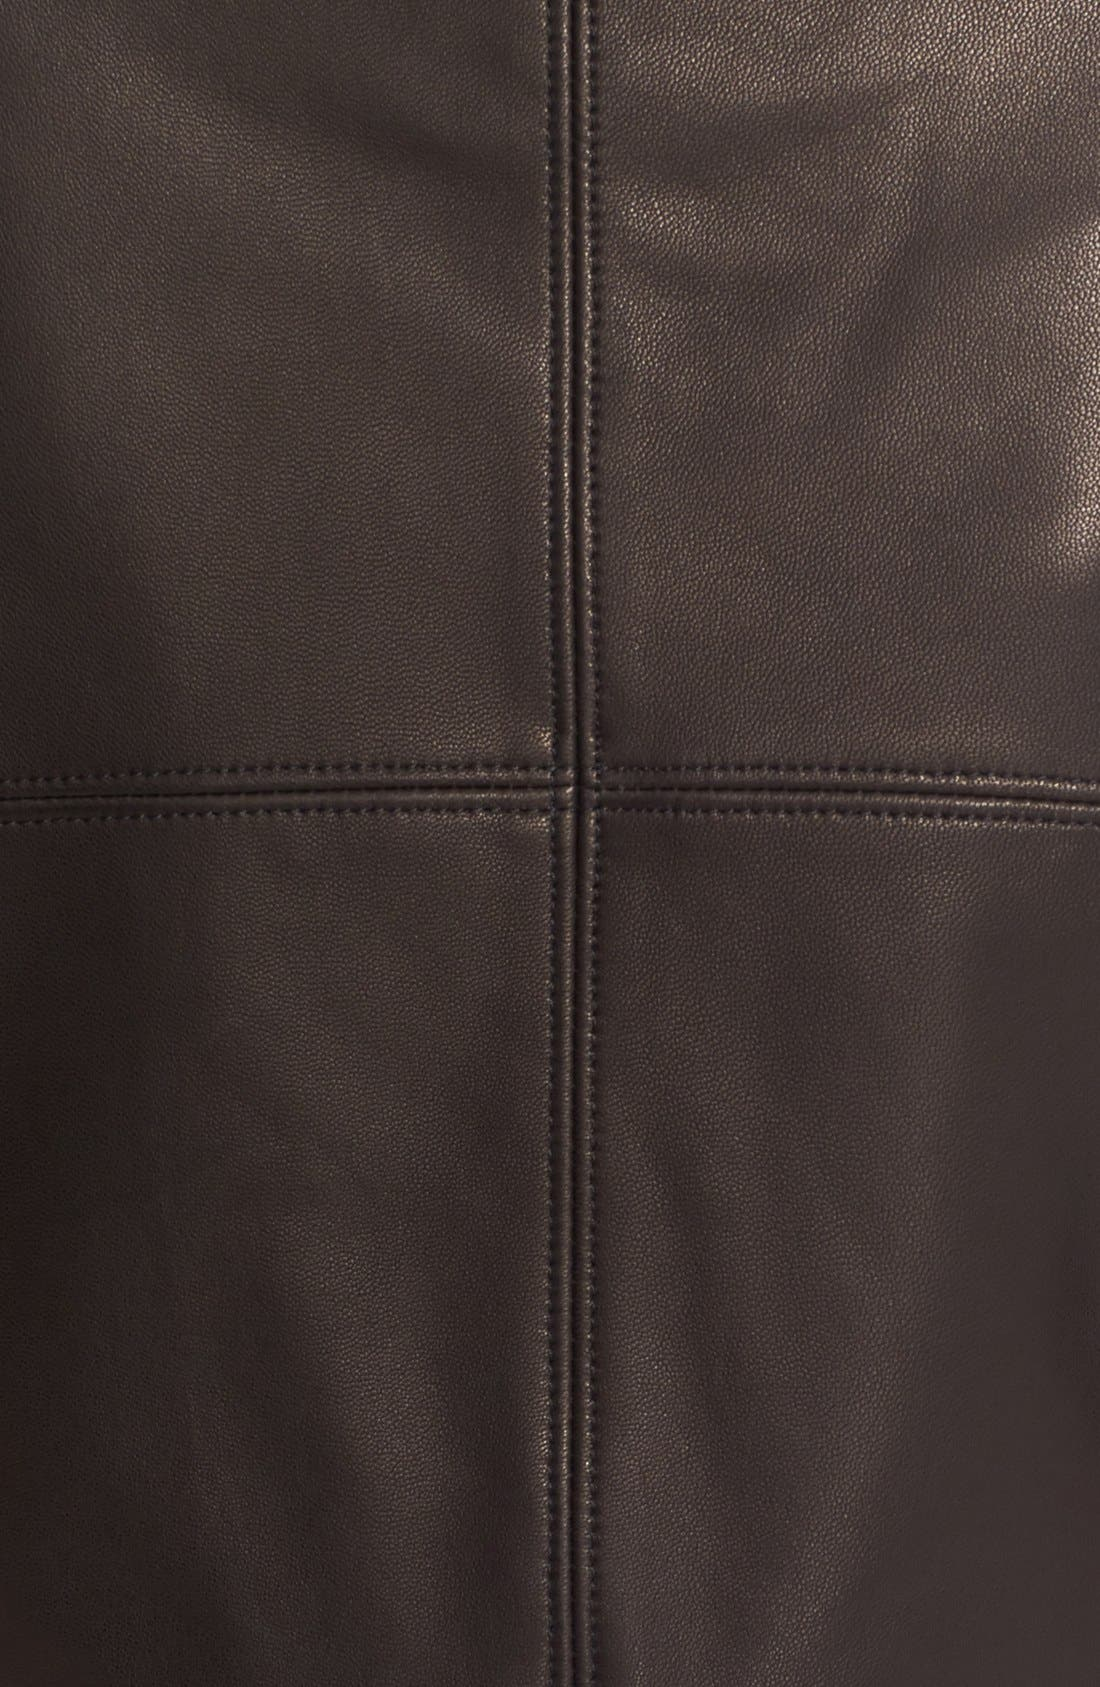 'Gimmy' Crop Lambskin Leather Jacket,                             Alternate thumbnail 3, color,                             Jet